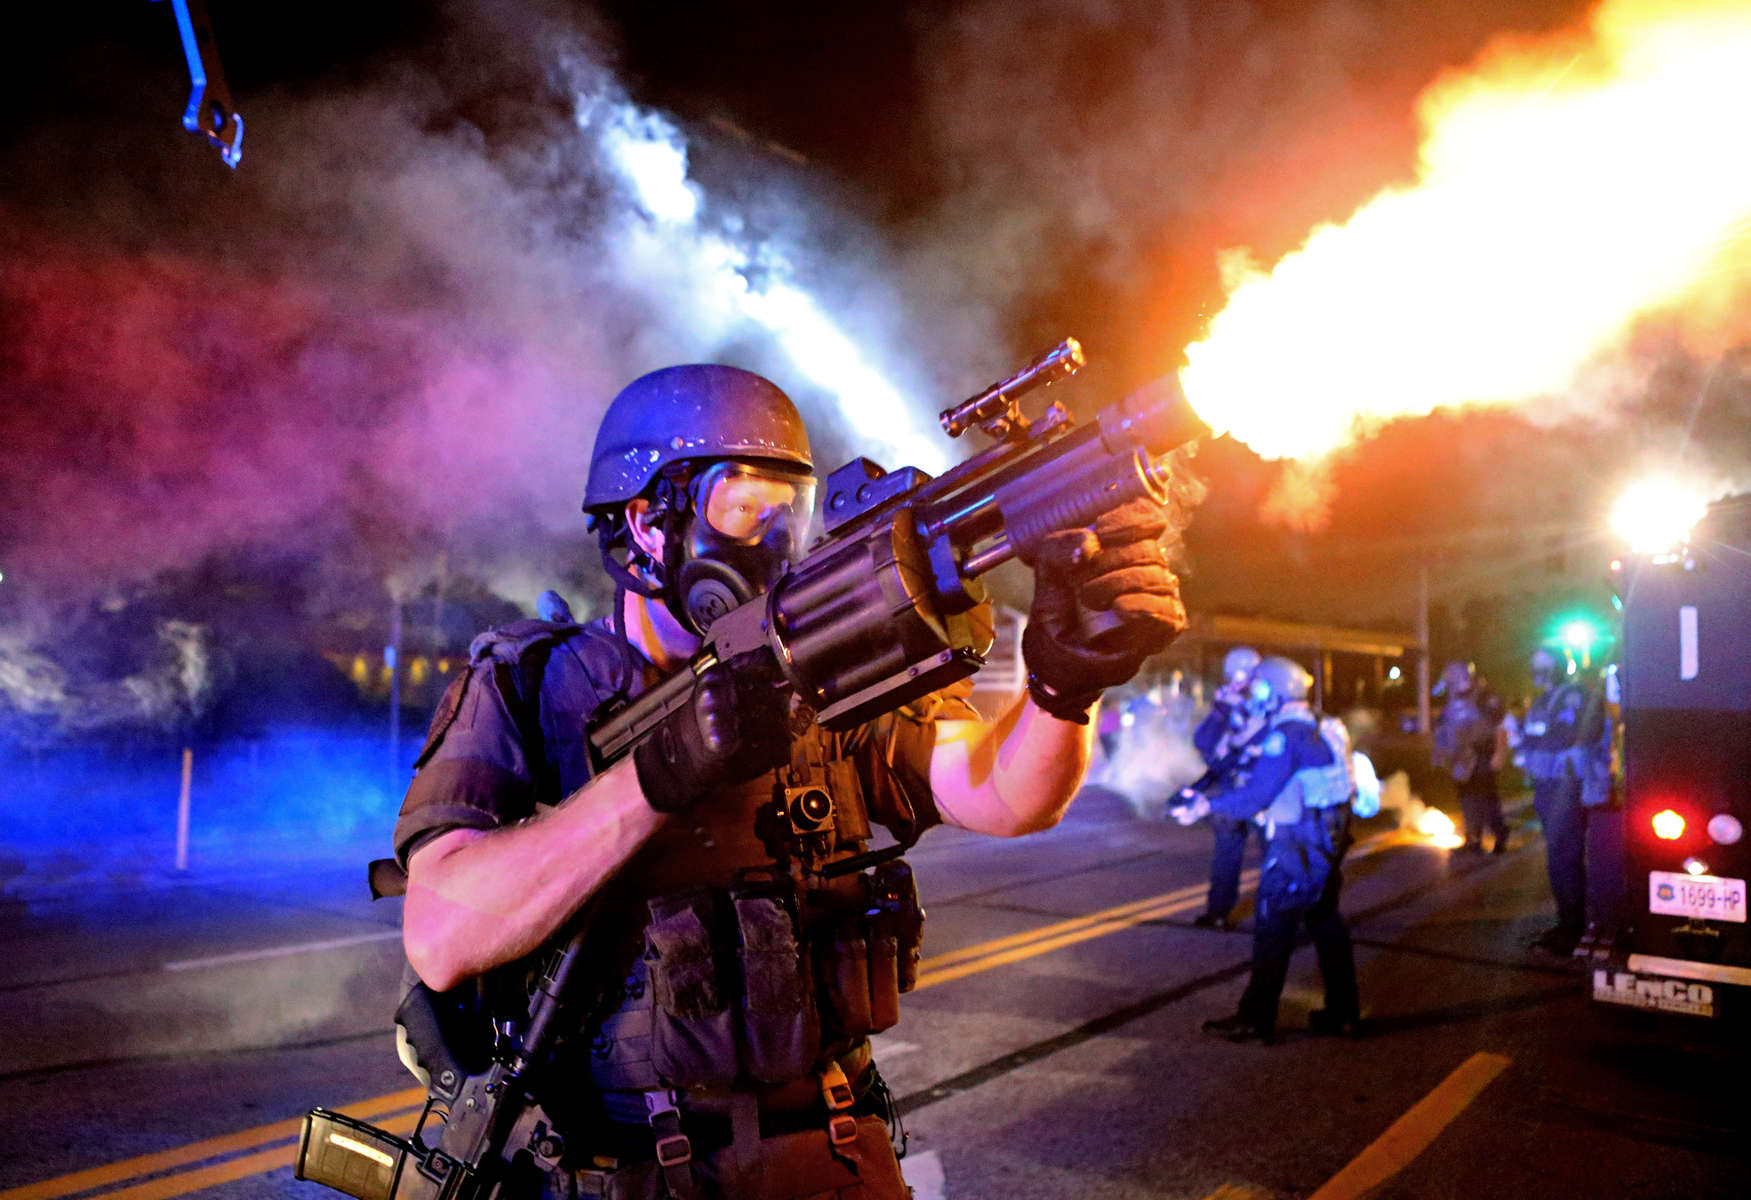 A member of the St. Louis County Police tactical team fires rounds of tear gas into a crowd of people in response to a series of gunshots fired at the police during demonstrations along W. Florissant Road near the QuikTrip in Ferguson, Mo. on Monday, Aug. 18, 2014.  Protesters also threw bottles and rocks with at least one rock striking an officer in the arm.